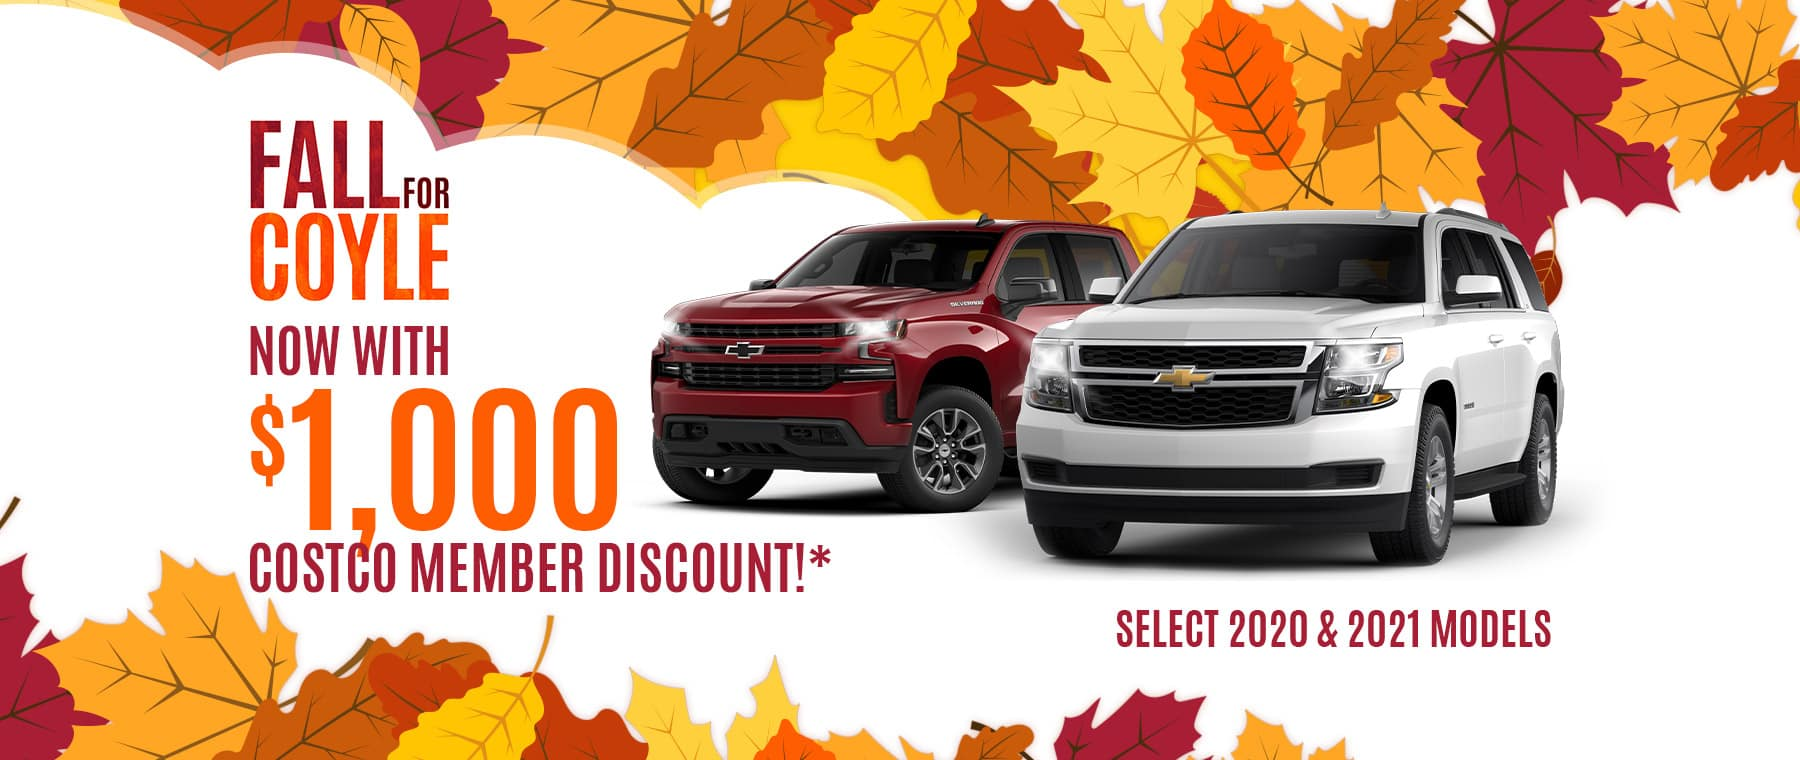 Special Rebate for Costco Members at Coyle in Clarksville, Indiana